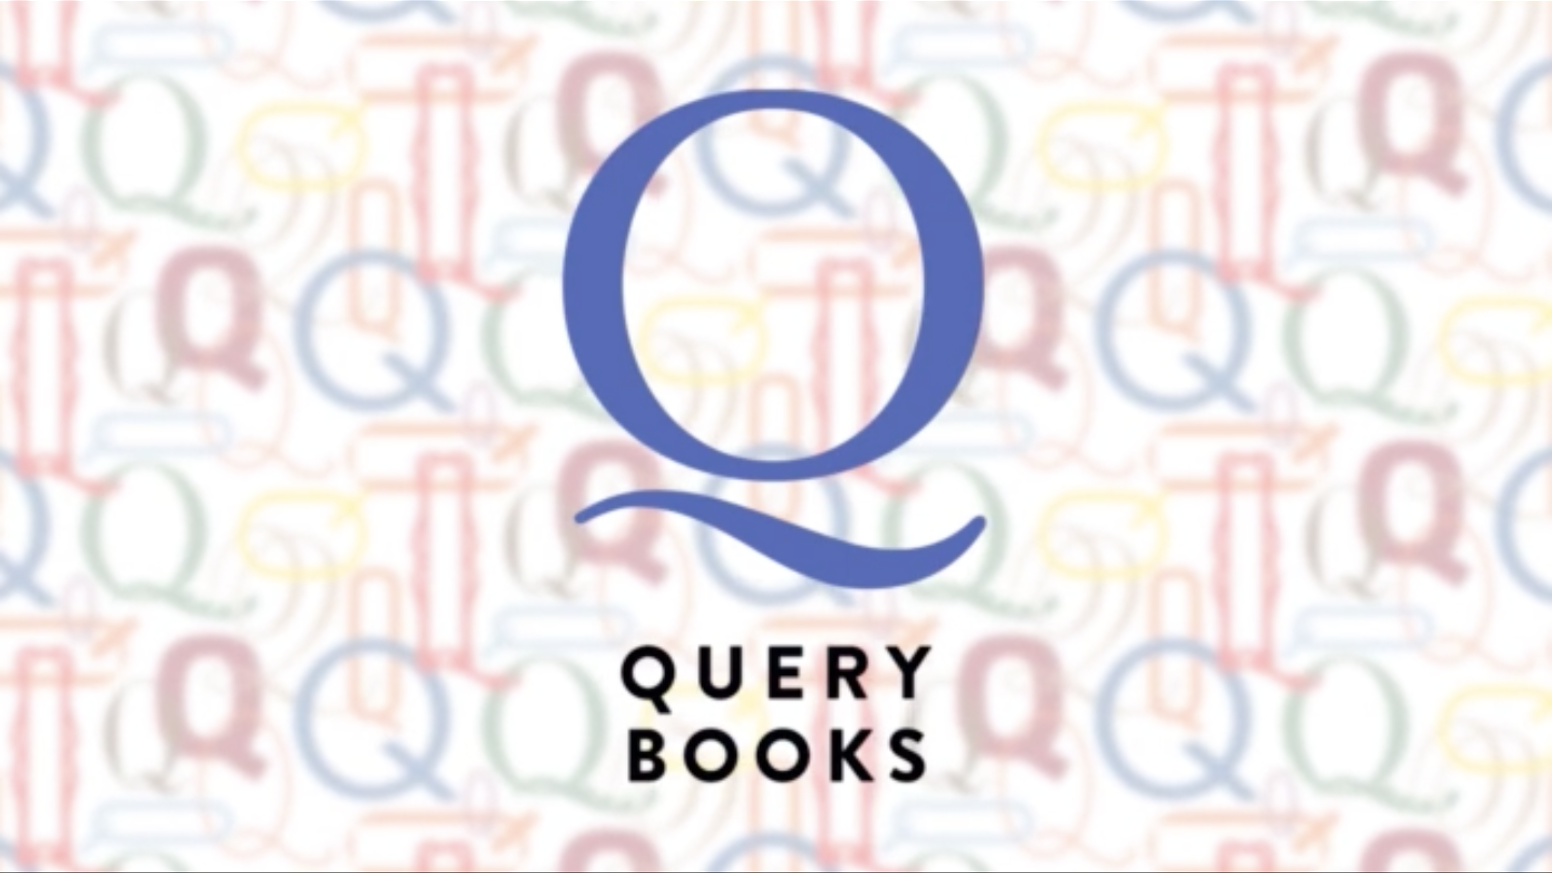 Ken White, Publisher-to-be, tells some stories about why Query Books matters.